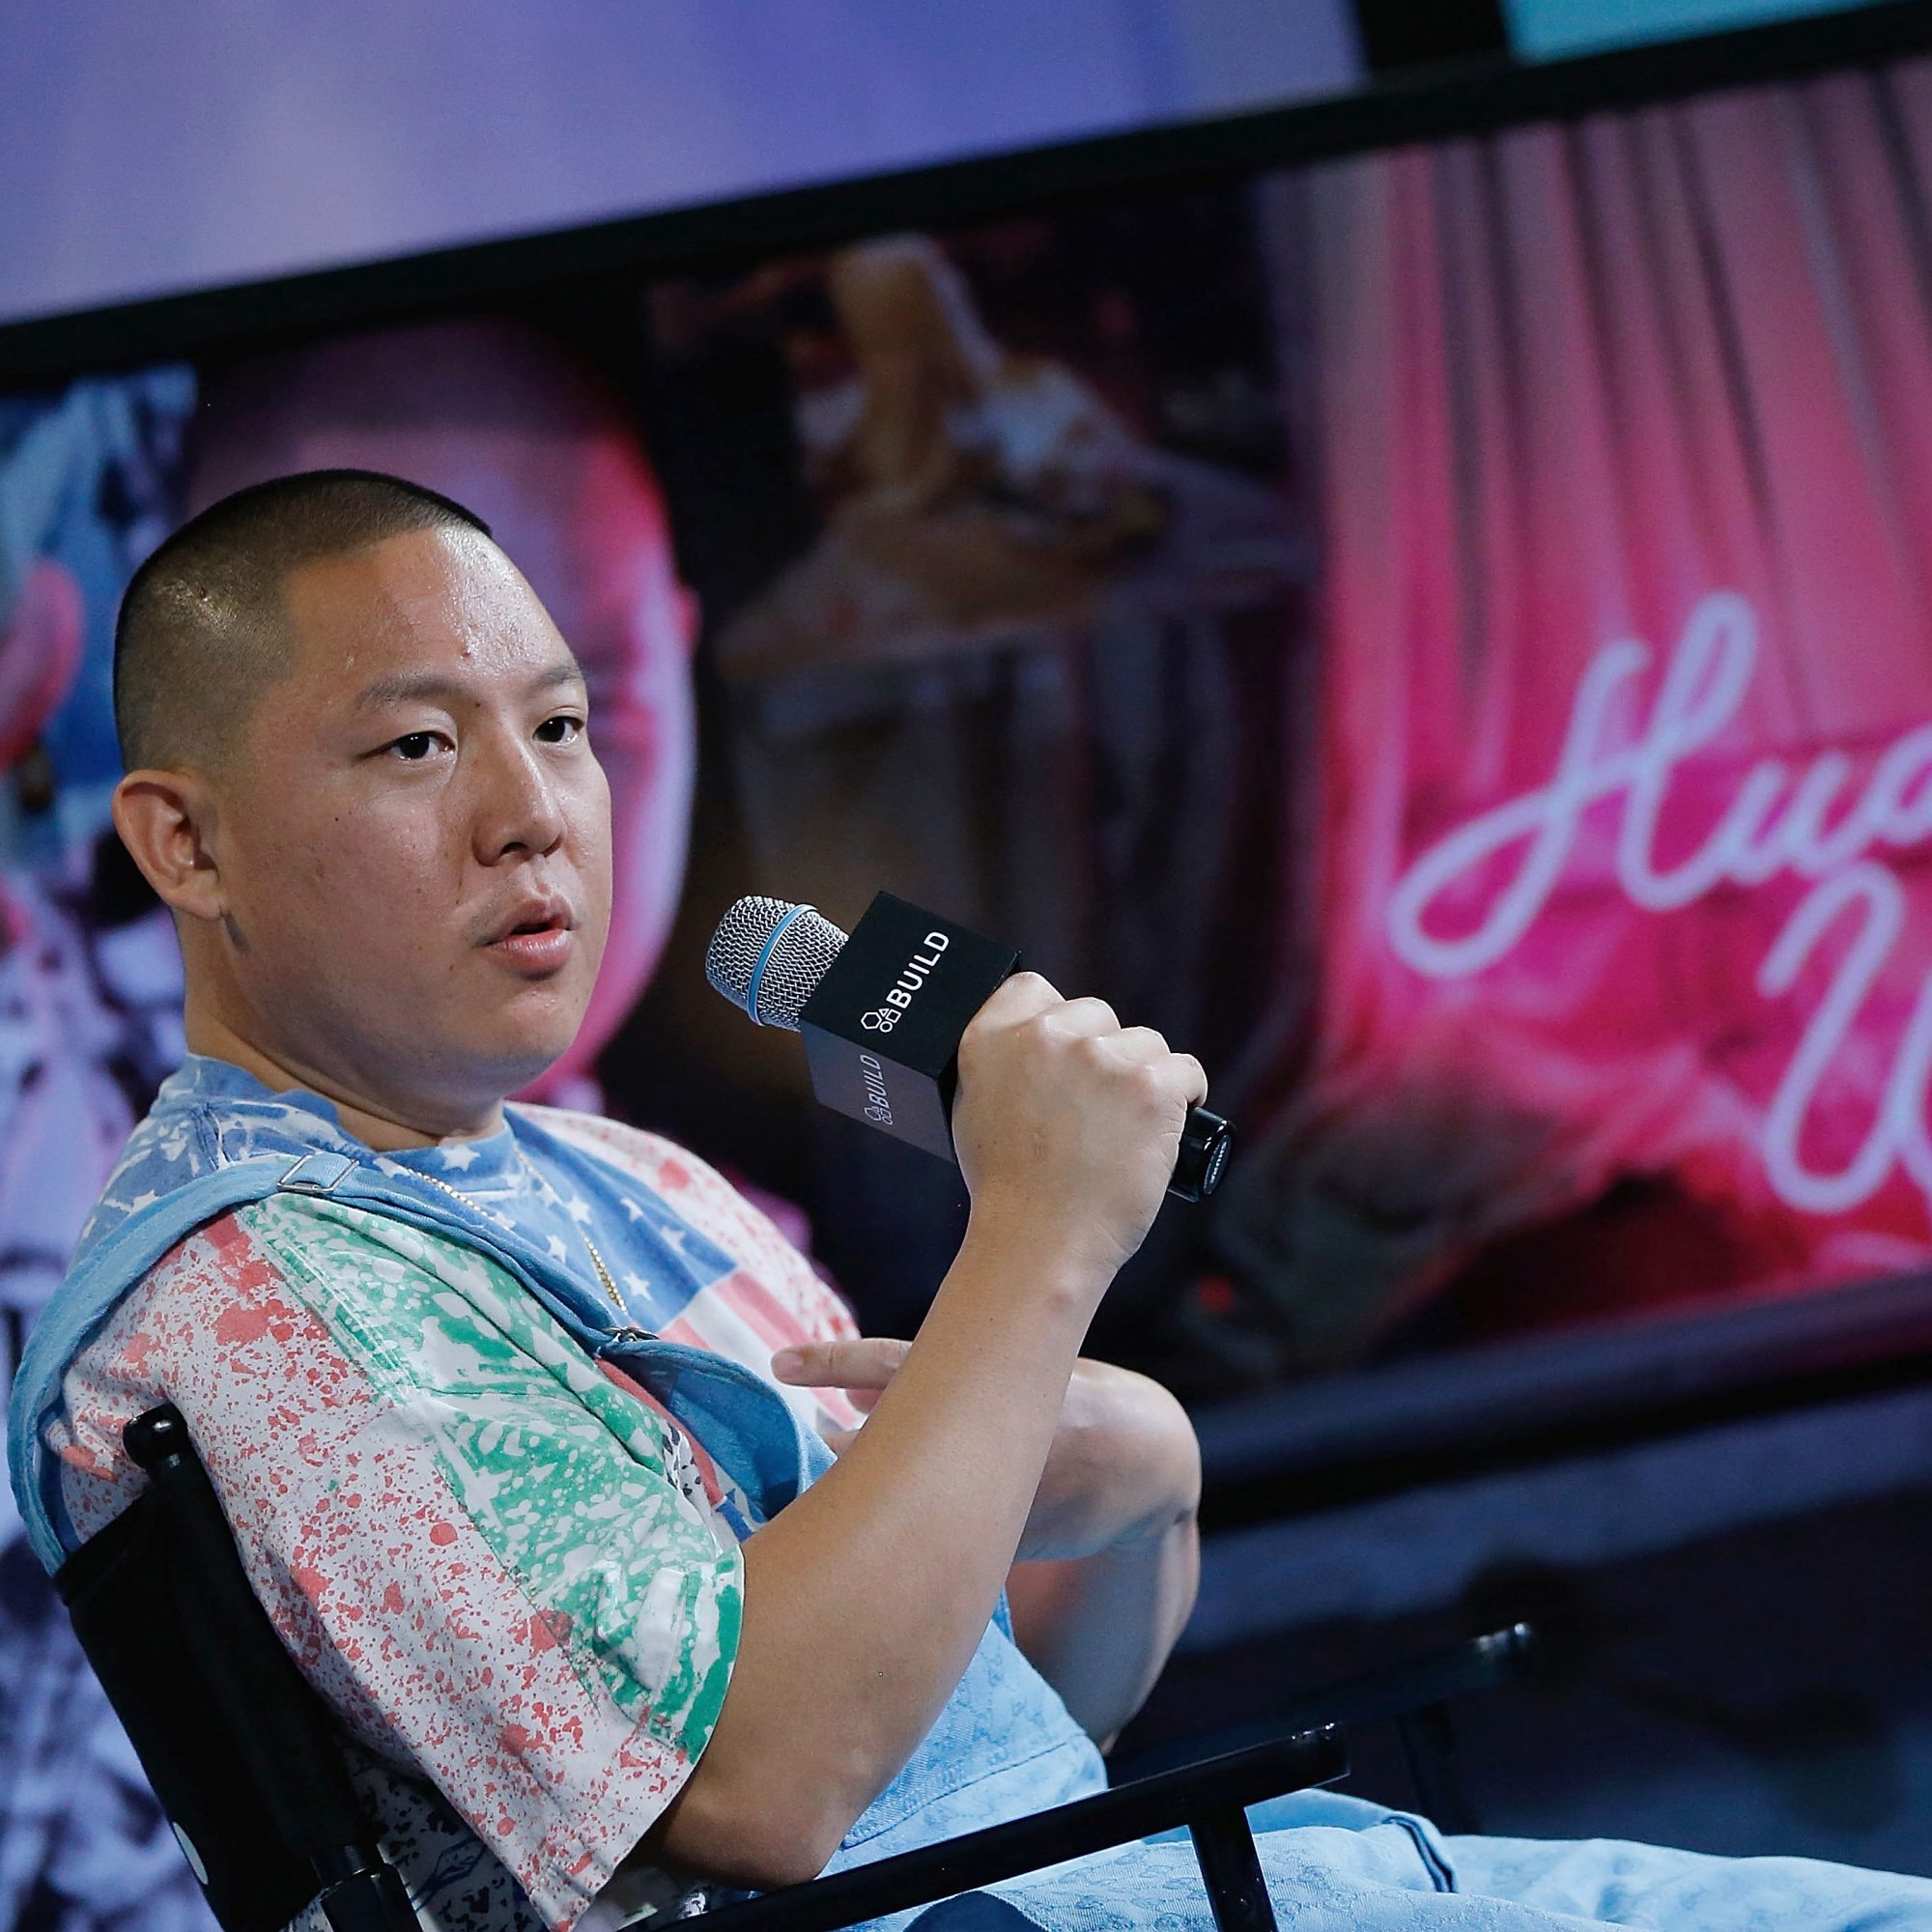 eddie-huang-adidas-shoes-fwx